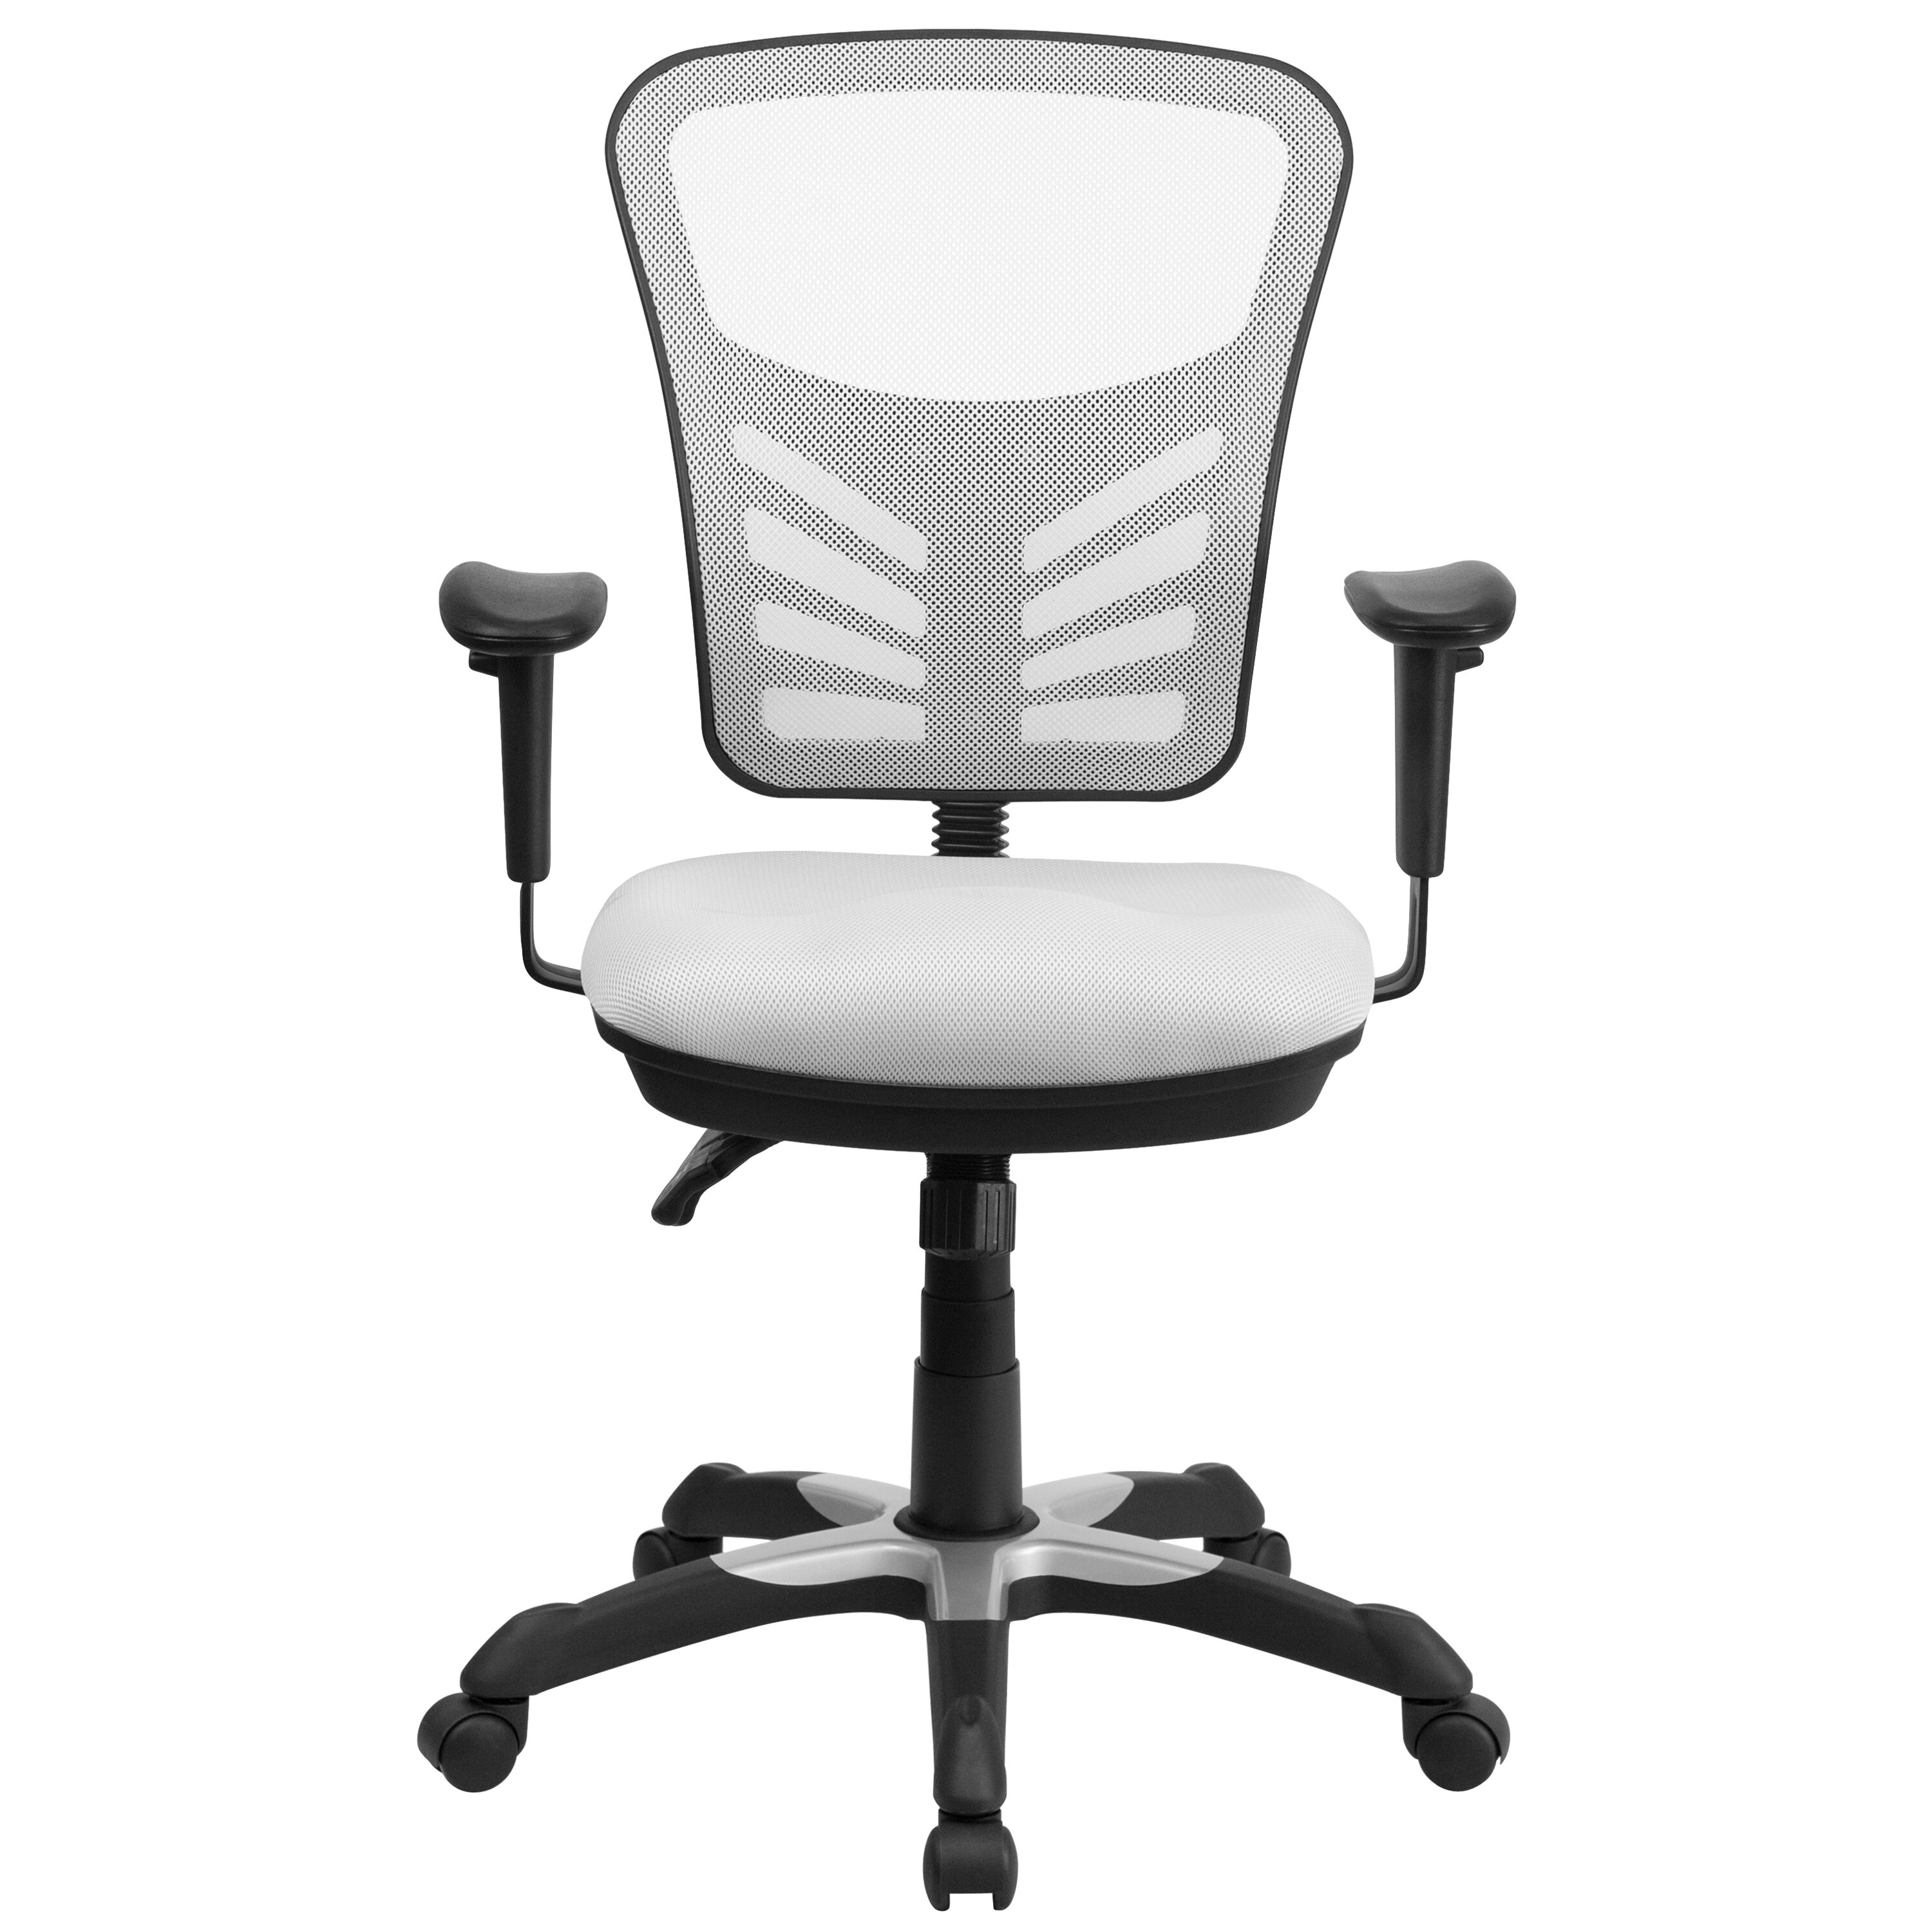 Astounding Billups Ergonomic Mesh Executive Chair Gmtry Best Dining Table And Chair Ideas Images Gmtryco